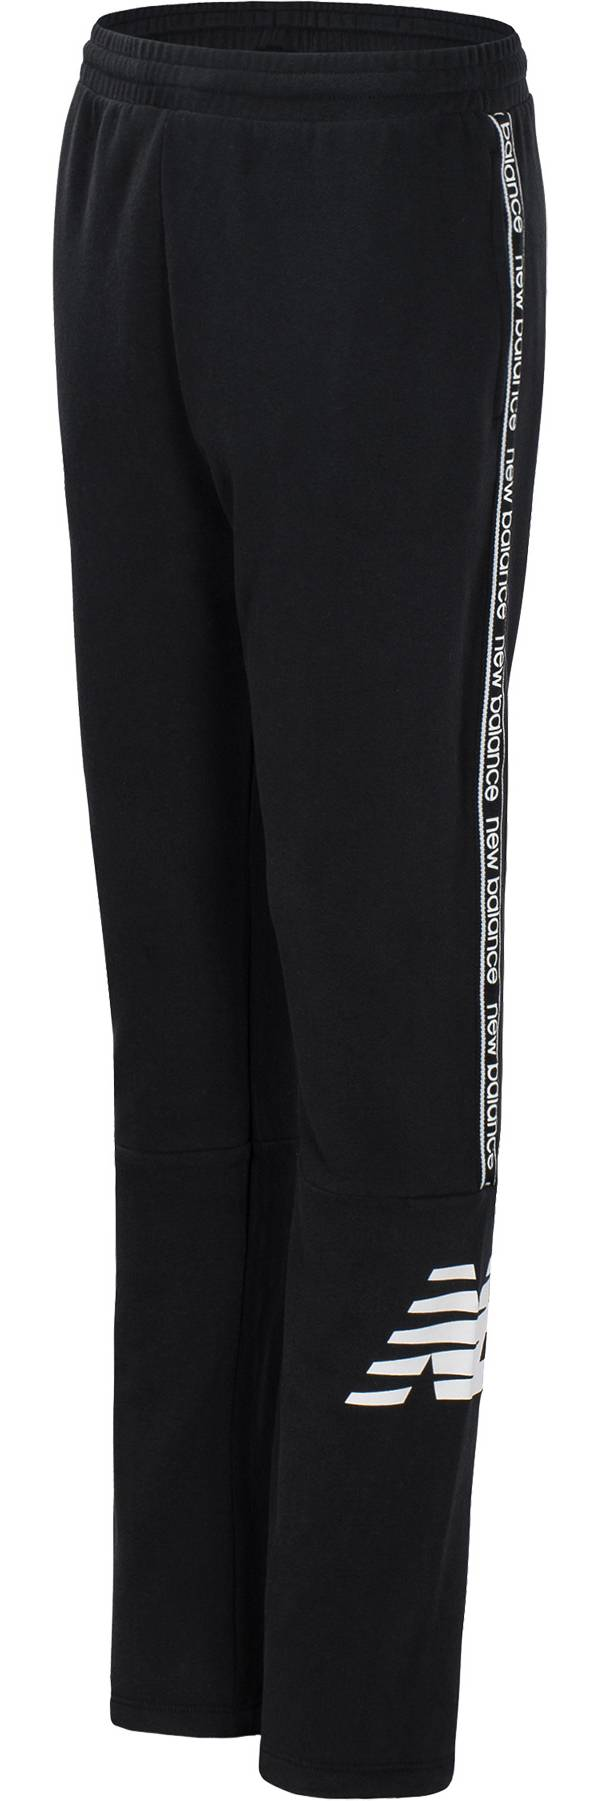 New Balance Little Boys' Side Tape Jogger Pants product image